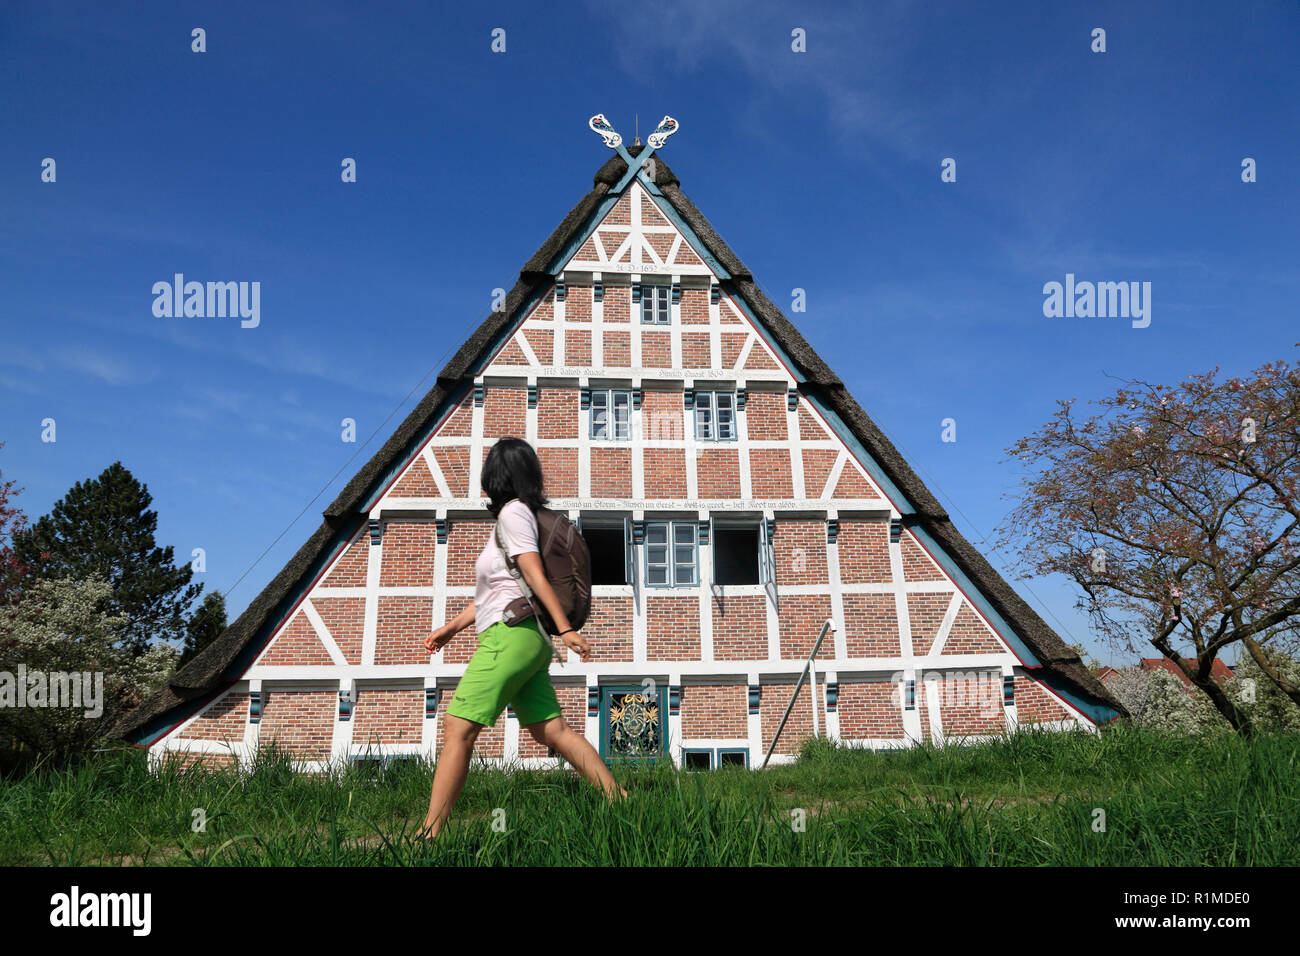 Hiker in front of an Old Farmhouse at Este-dike, Jork-Koenigreich, Altes Land, Lower Saxony, Germany, Europe - Stock Image